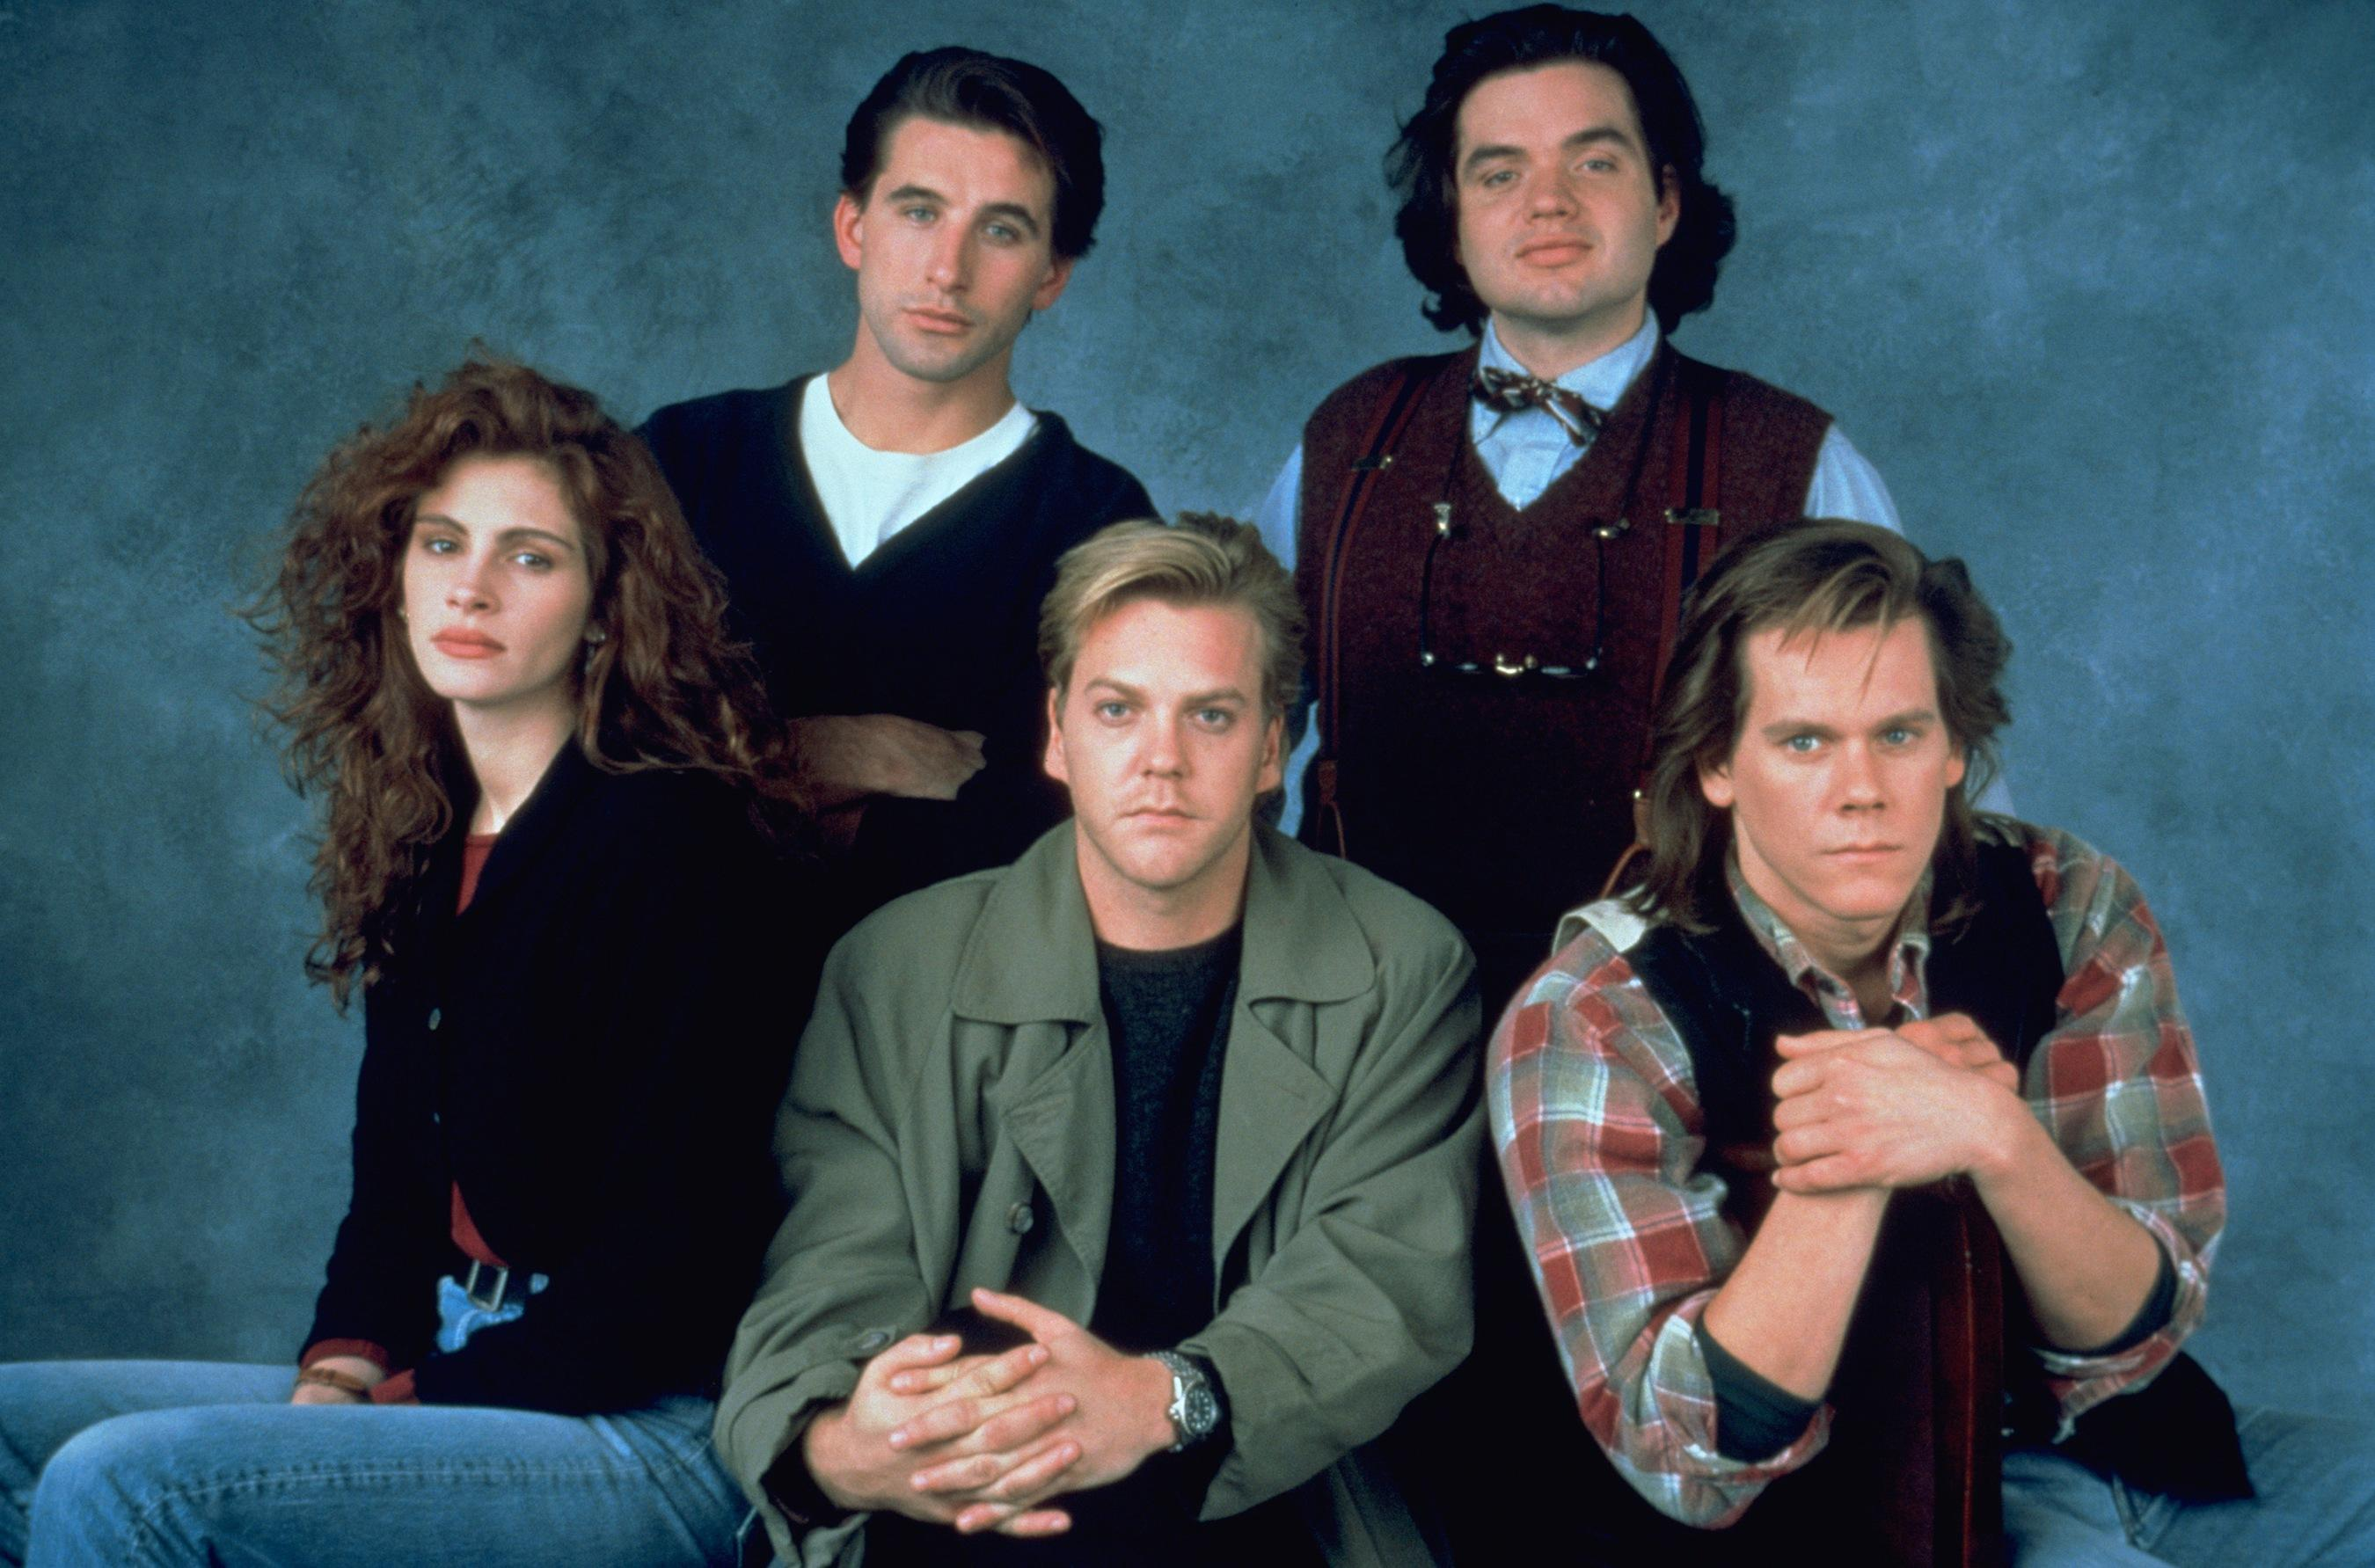 Julia Roberts, William Baldwin, Oliver Platt, Kevin Bacon and Kiefer Sutherland in Flatliners (1990)